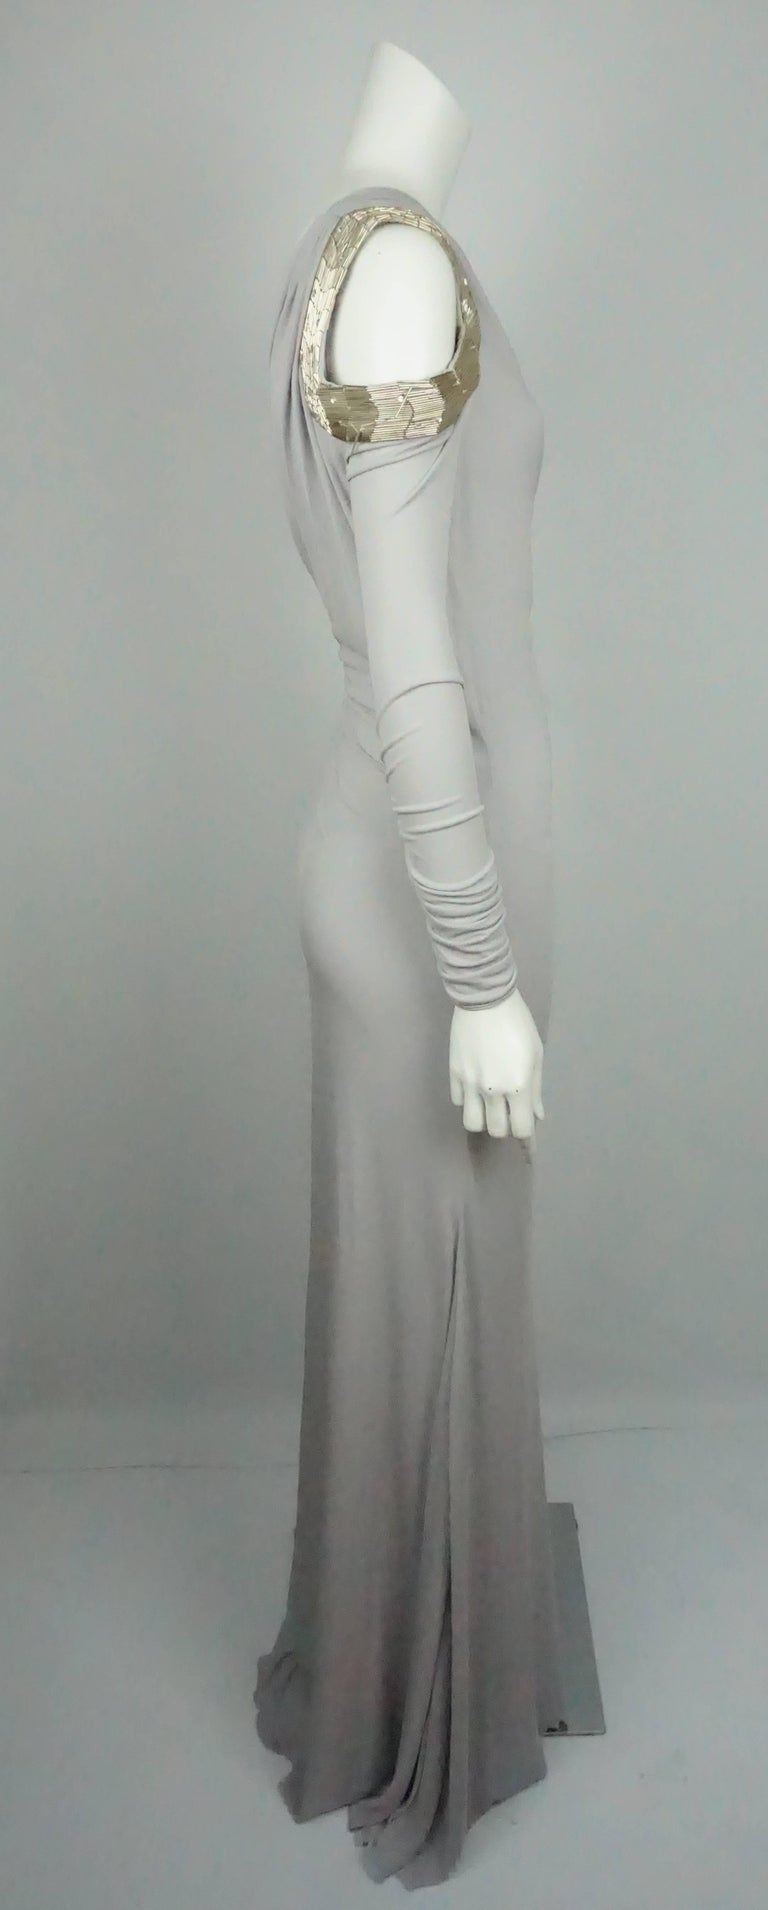 Roberto Cavalli Grey Silk Jersey One Shoulder Beaded Gown - 42  This beautiful gown is in good condition. The dress is made of a poly-blend material and is lined in silk. The dress is a one shoulder that is long sleeve and has a ruching detail on